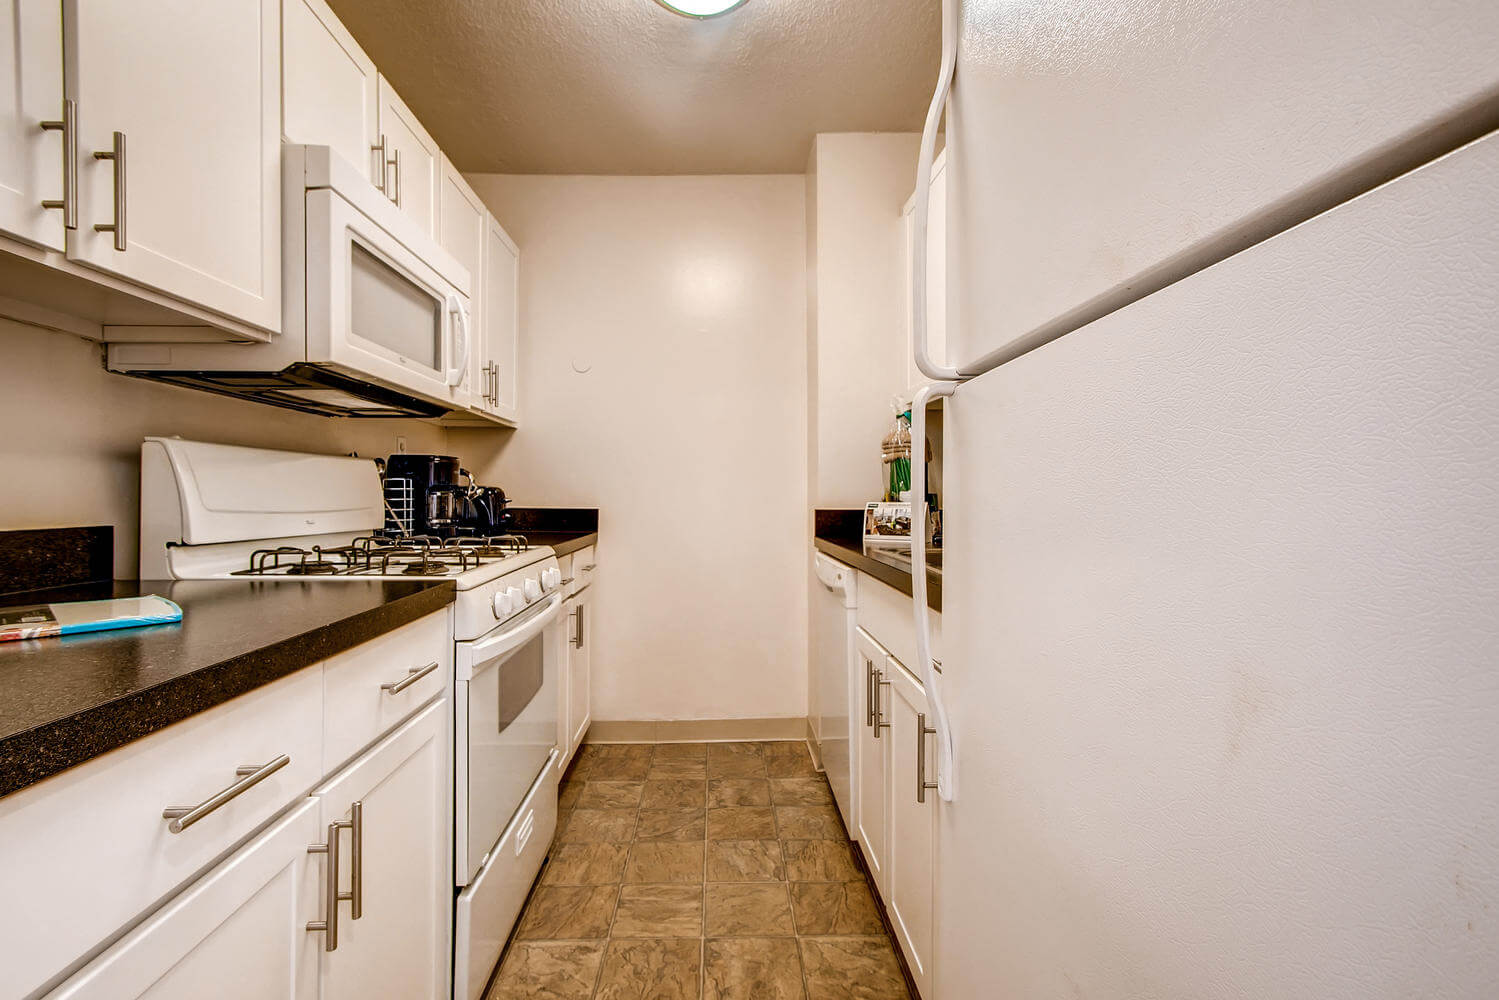 Mission Hill Furnished 1 Bedroom Apartment For Rent 4380